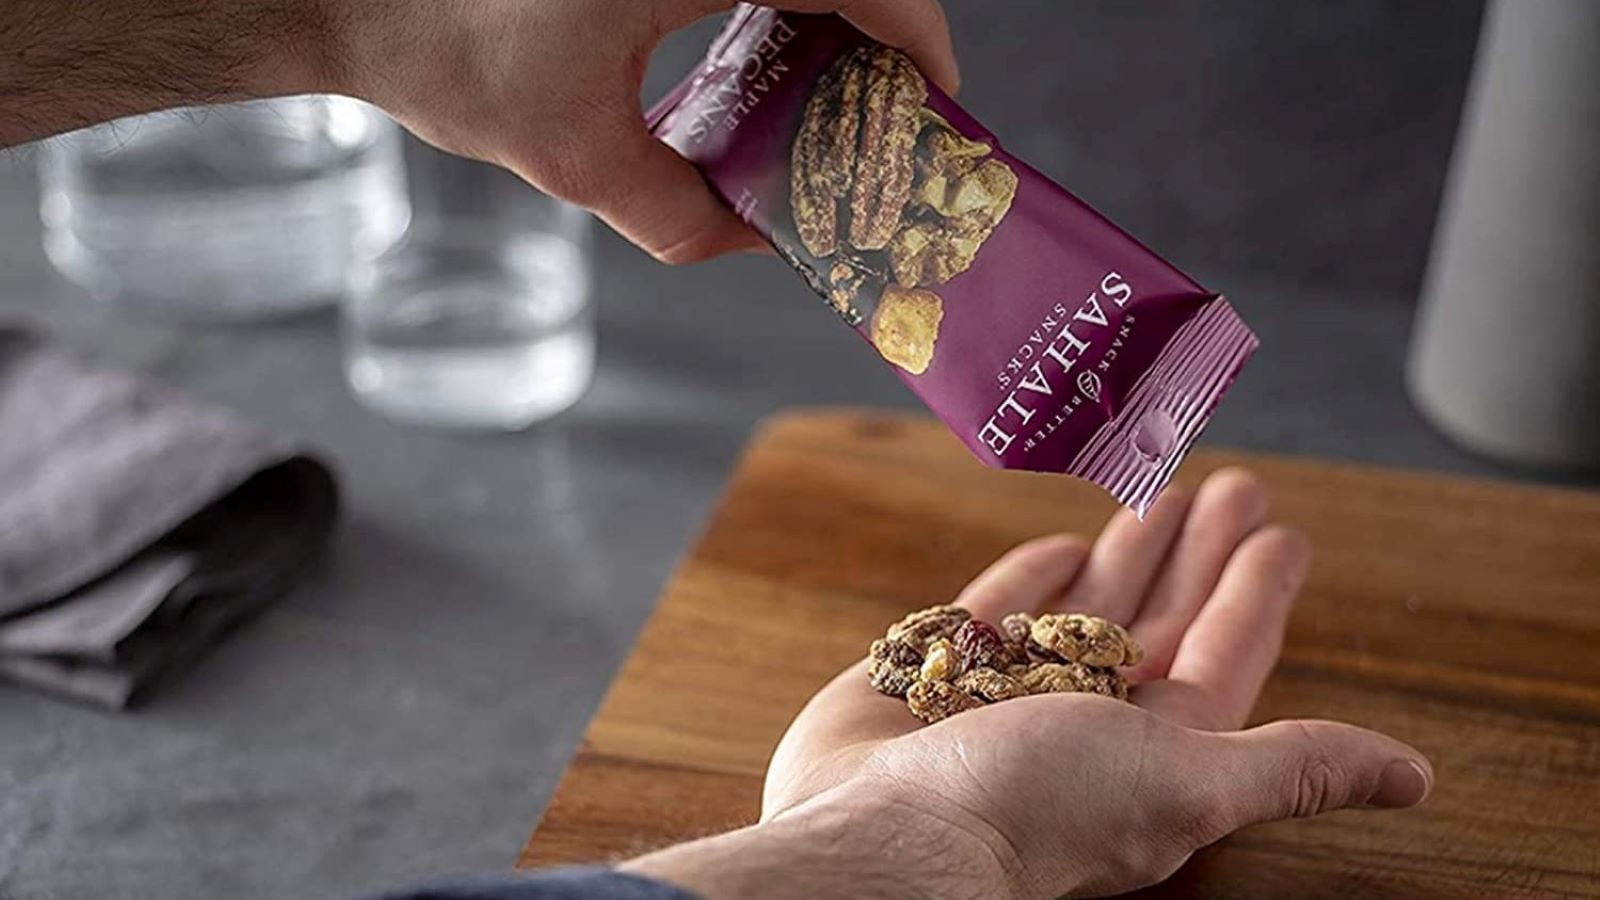 Someone sprinkling Sahale Maple Pecans in their hand out of a snack pack.